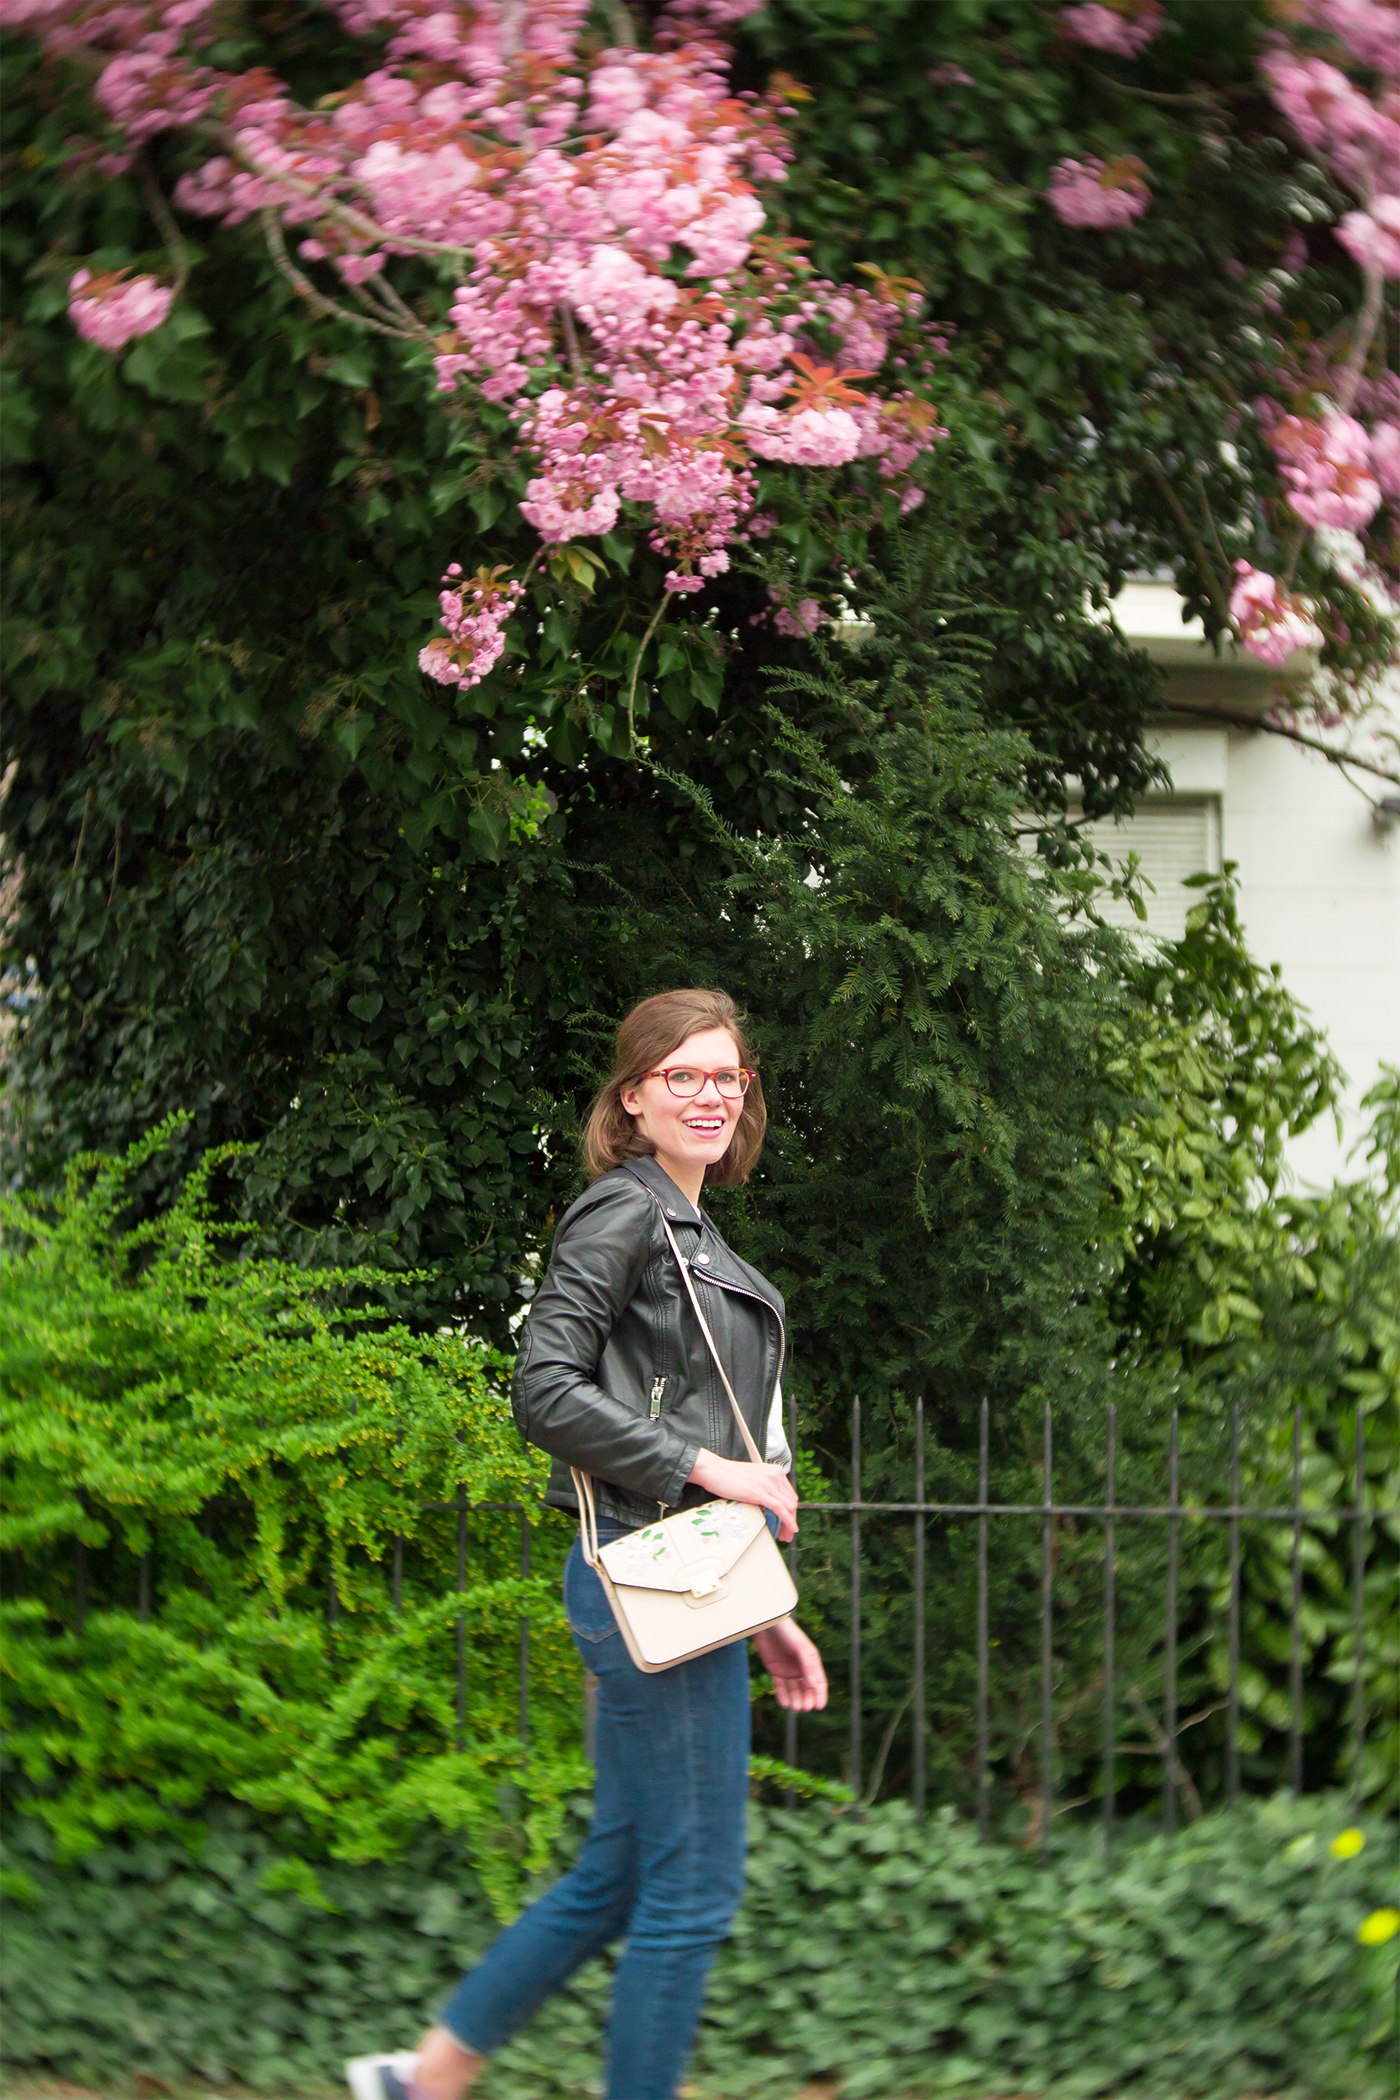 asos-farleigh-blogger-outfit-tourist-jeans